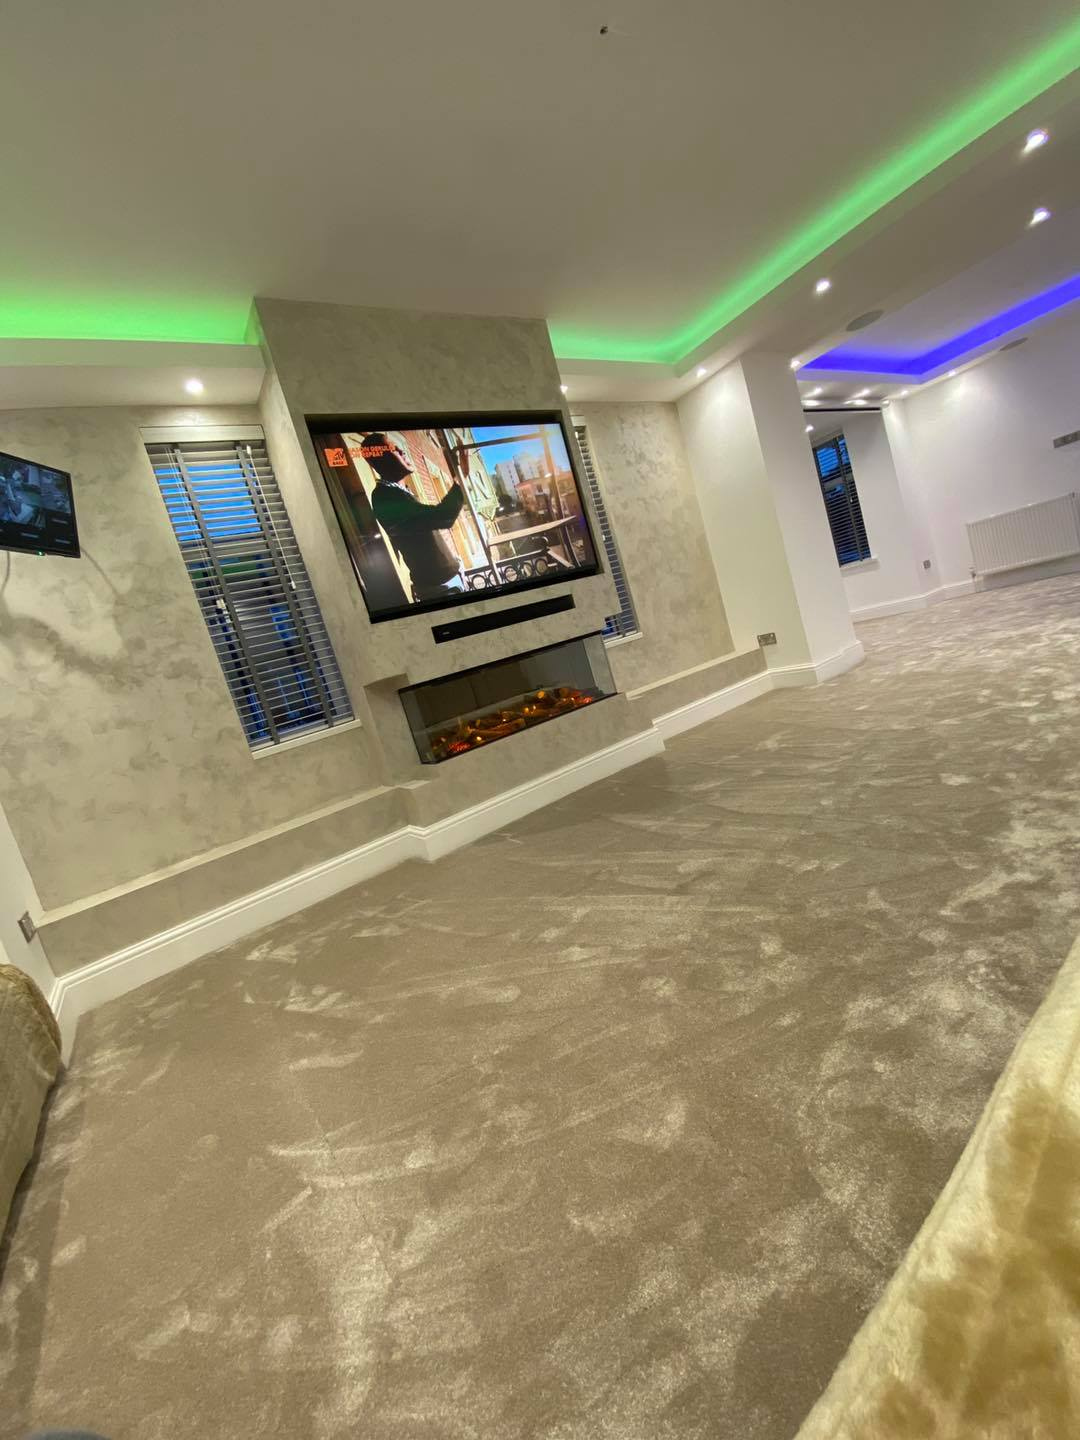 Venetian Plaster Interior Design Manchester Cheshire - Venetian Plastering North West. - Luxury pearl TV wall